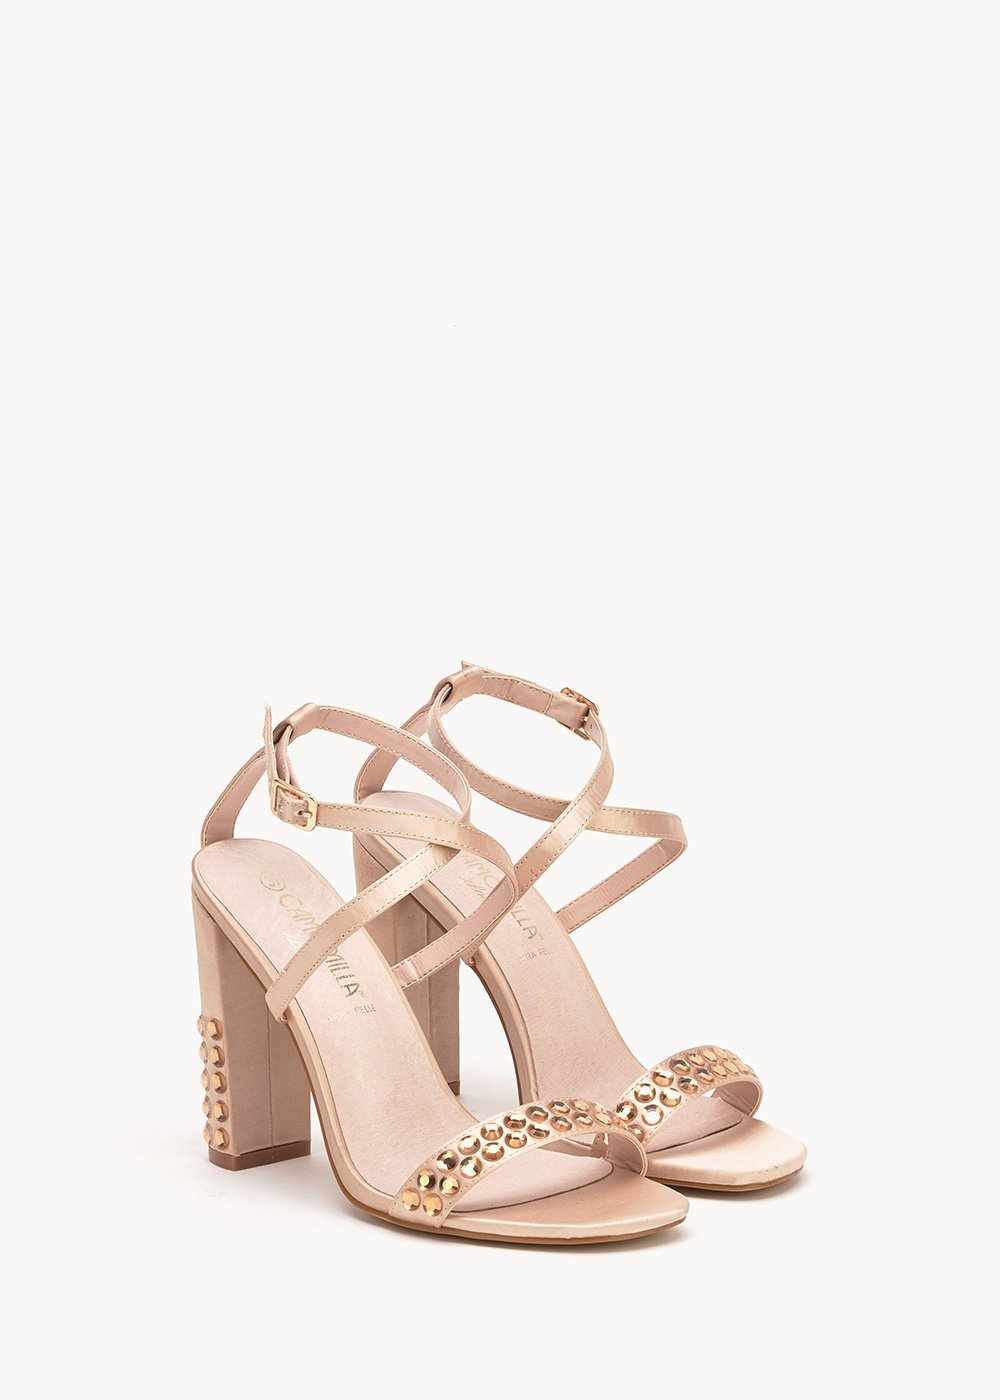 Shary sandals with crystal rhinestones - Light Beige - Woman